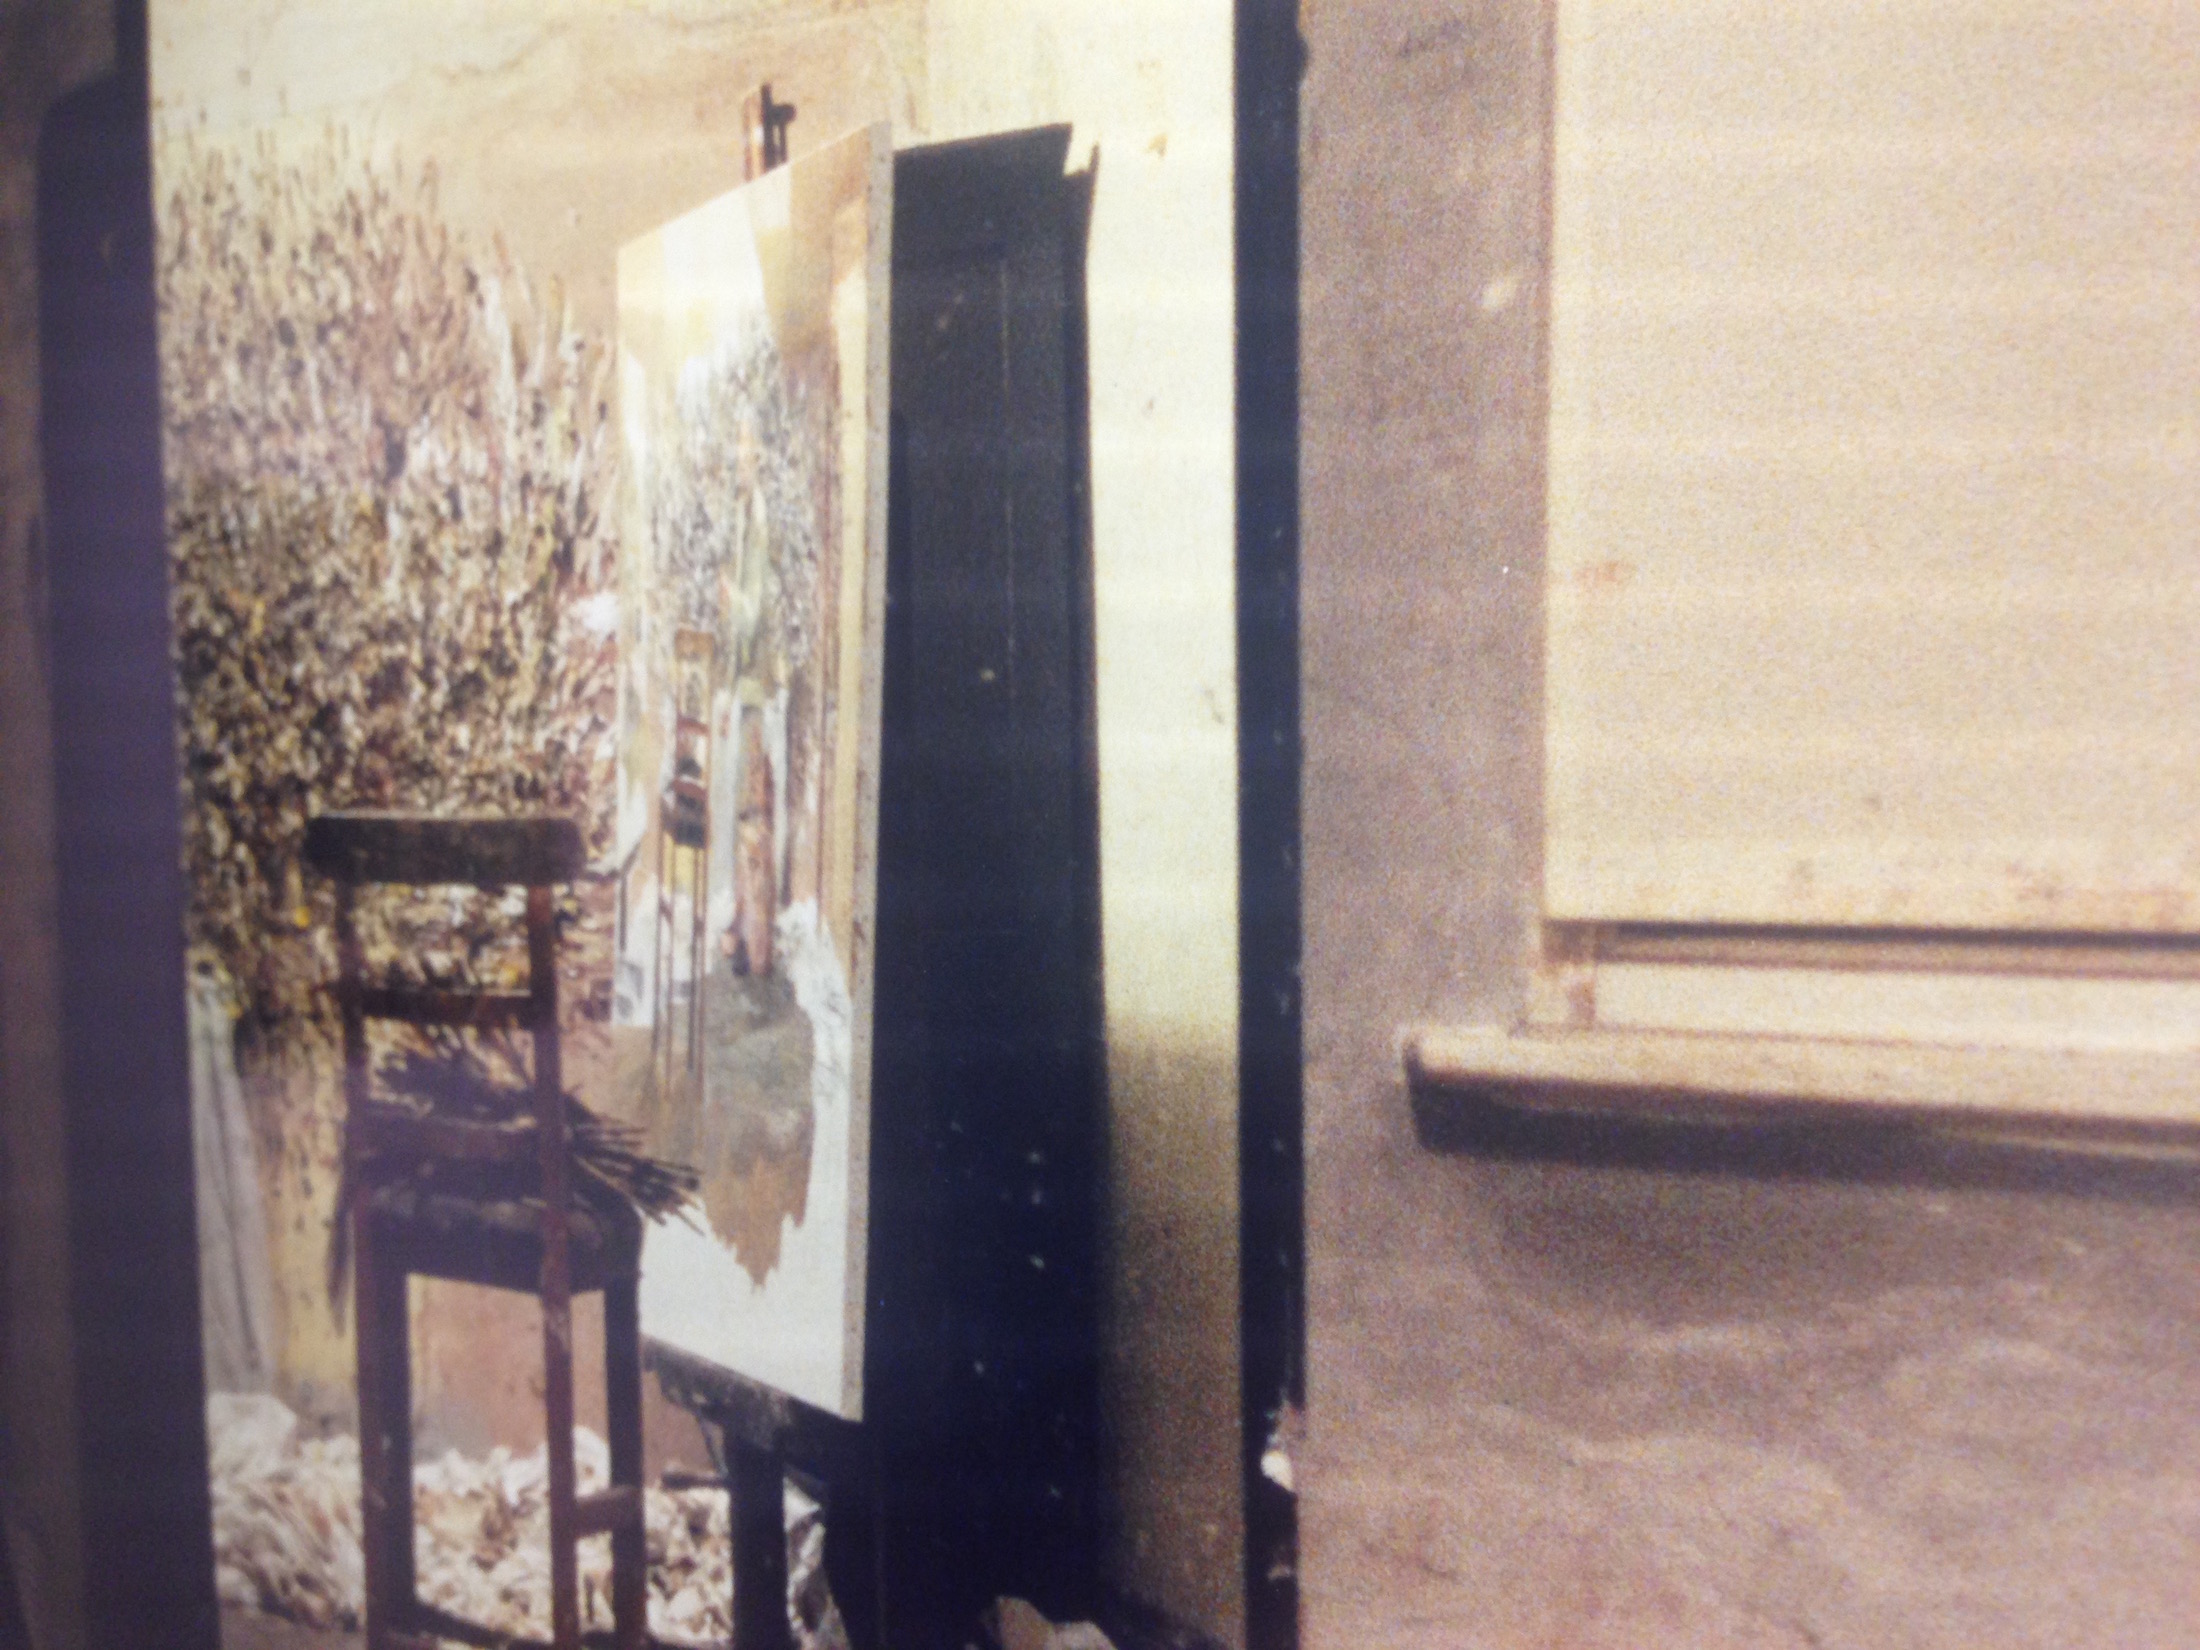 Detail from Photograph of Freud's Studio